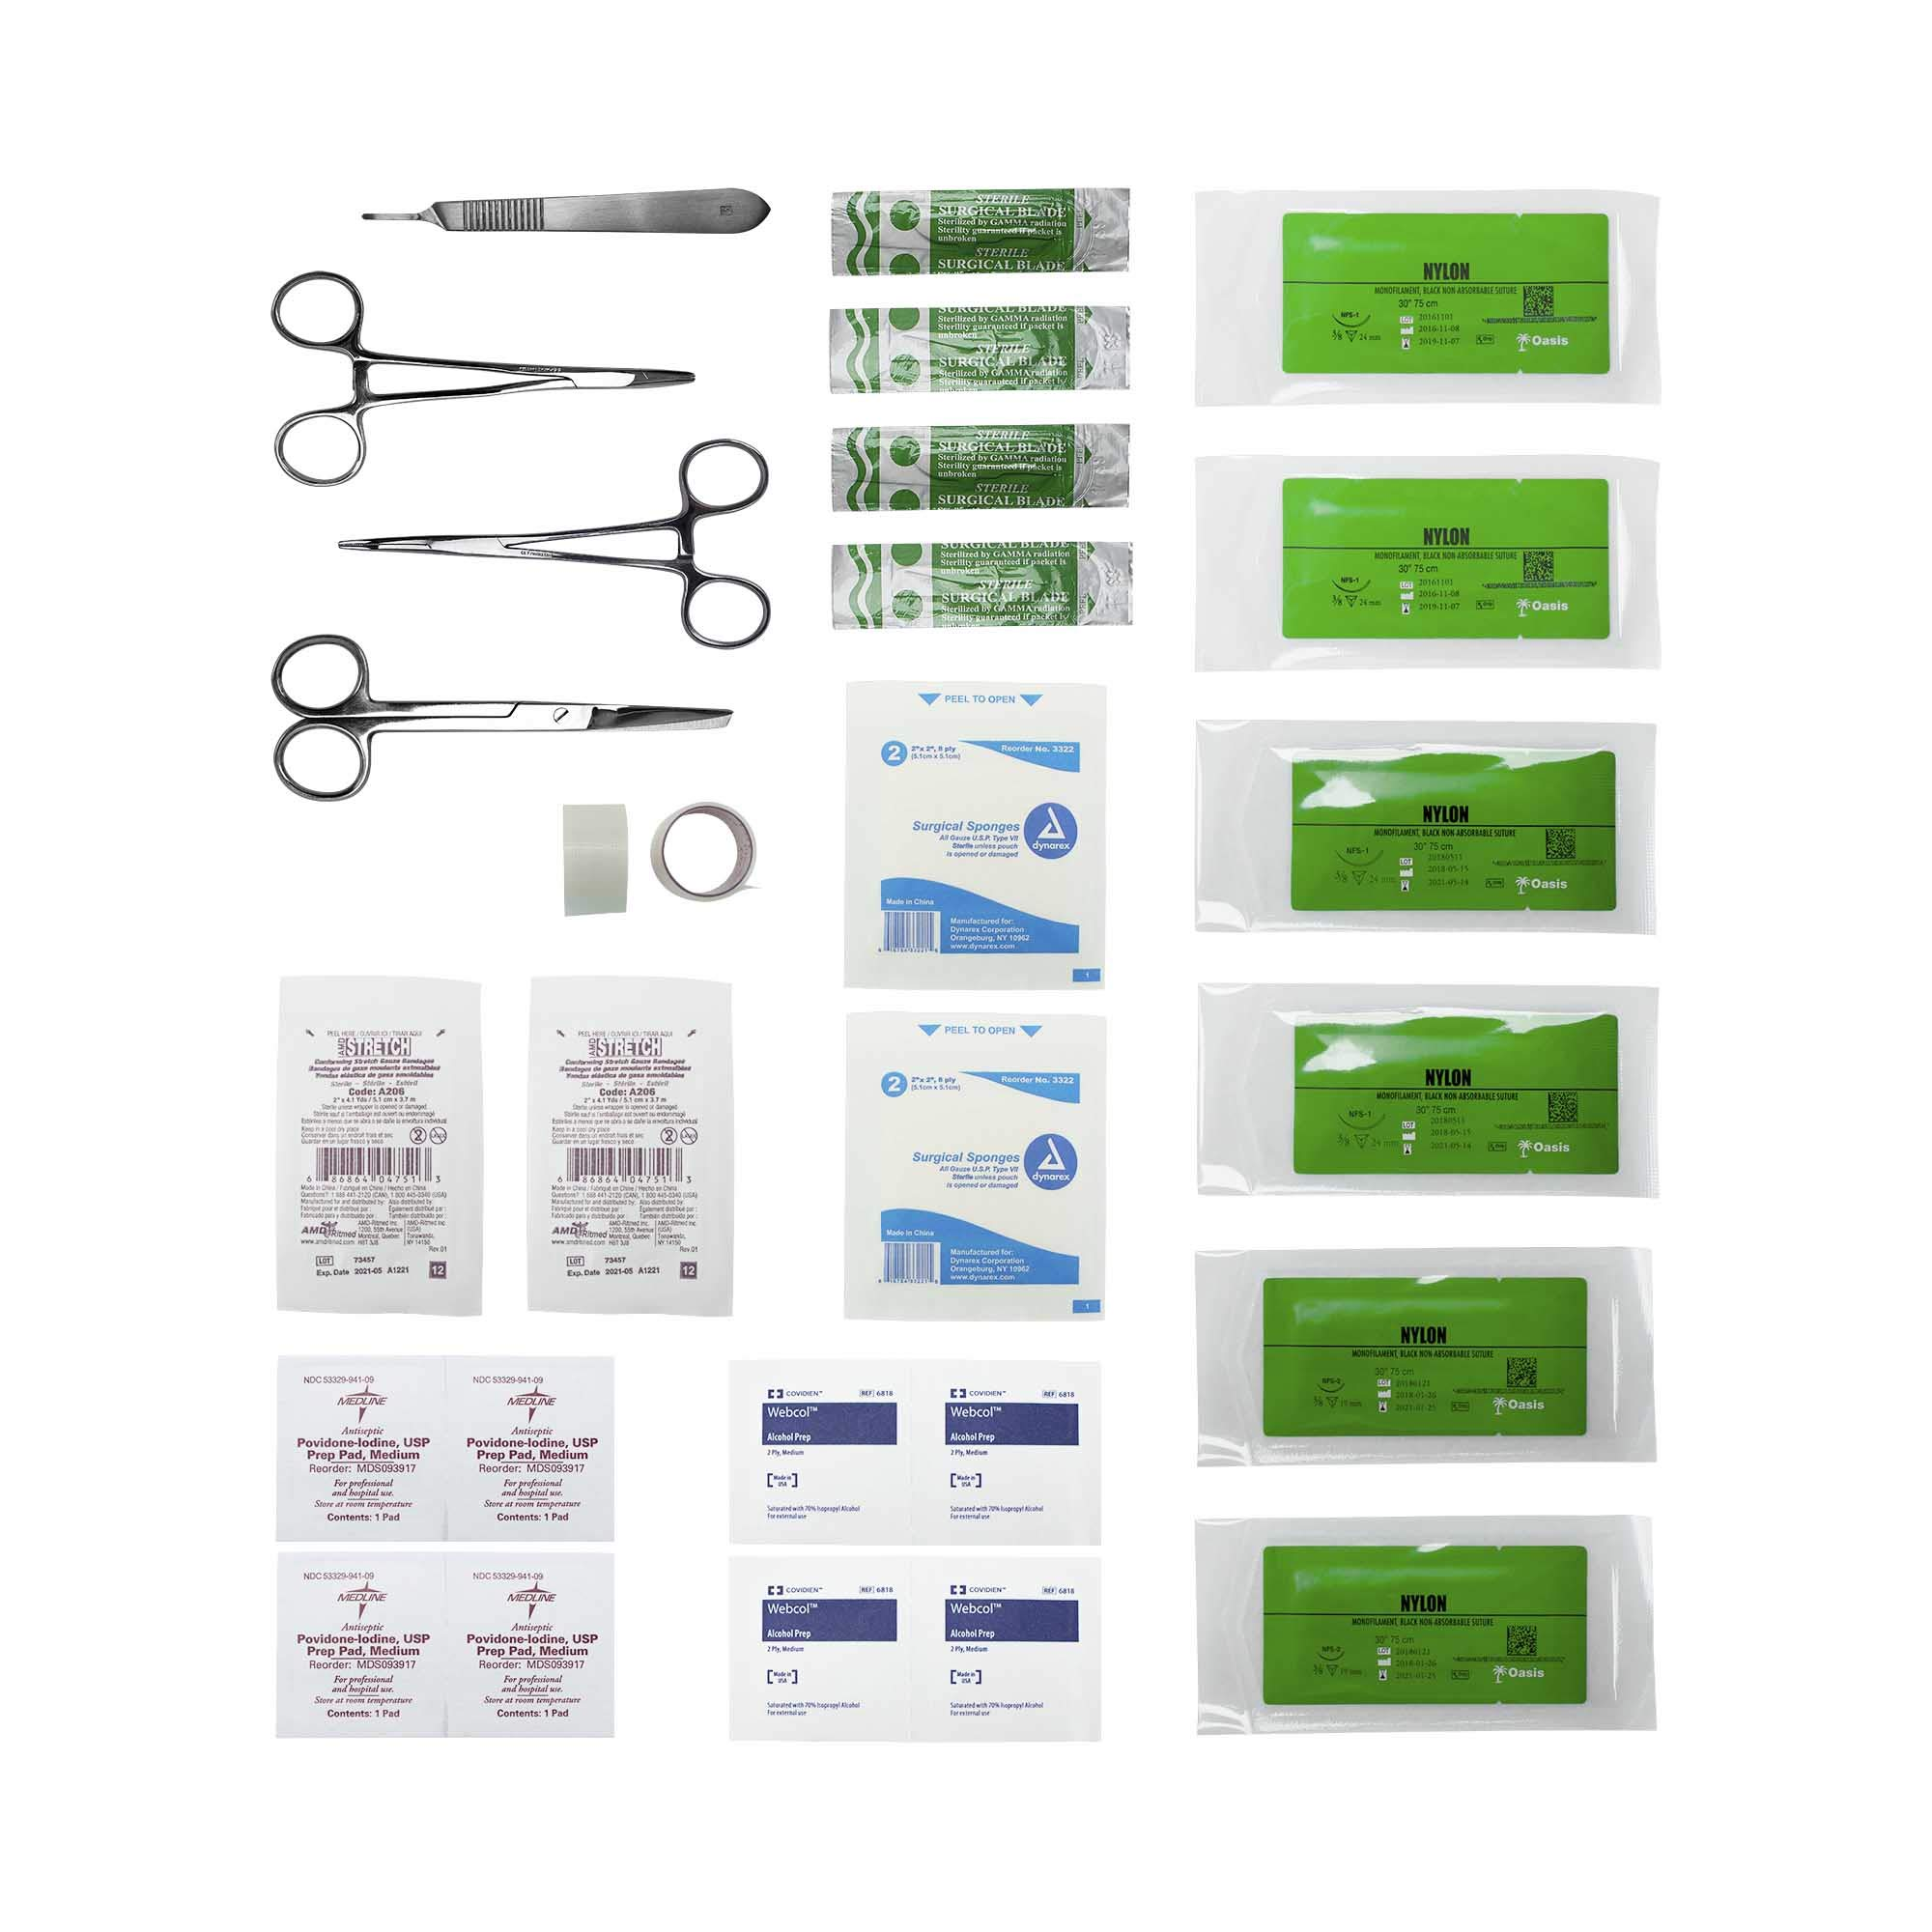 Advanced Surgical Suture First Aid Kit - 31 Piece Survival Kit by Safe Haven Supplies